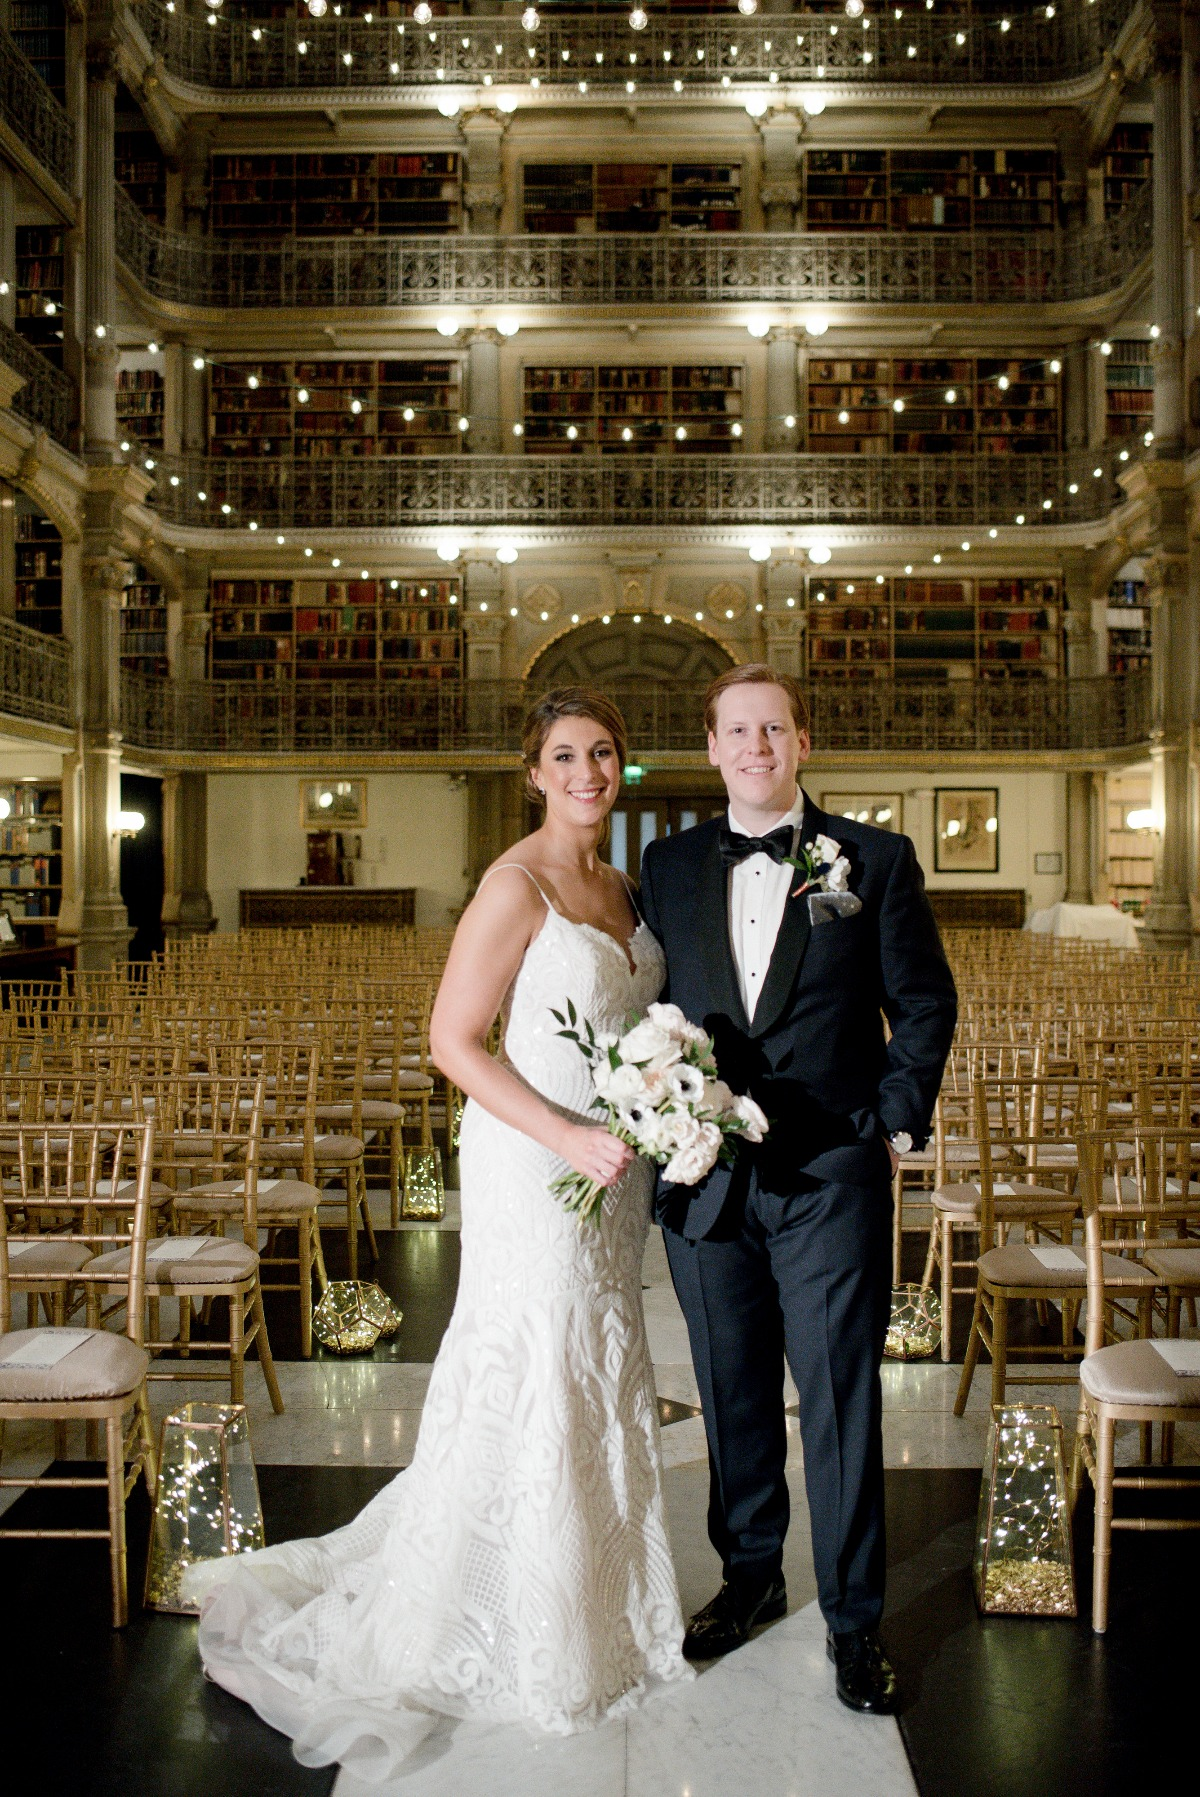 wedding ceremony at the Peabody Library